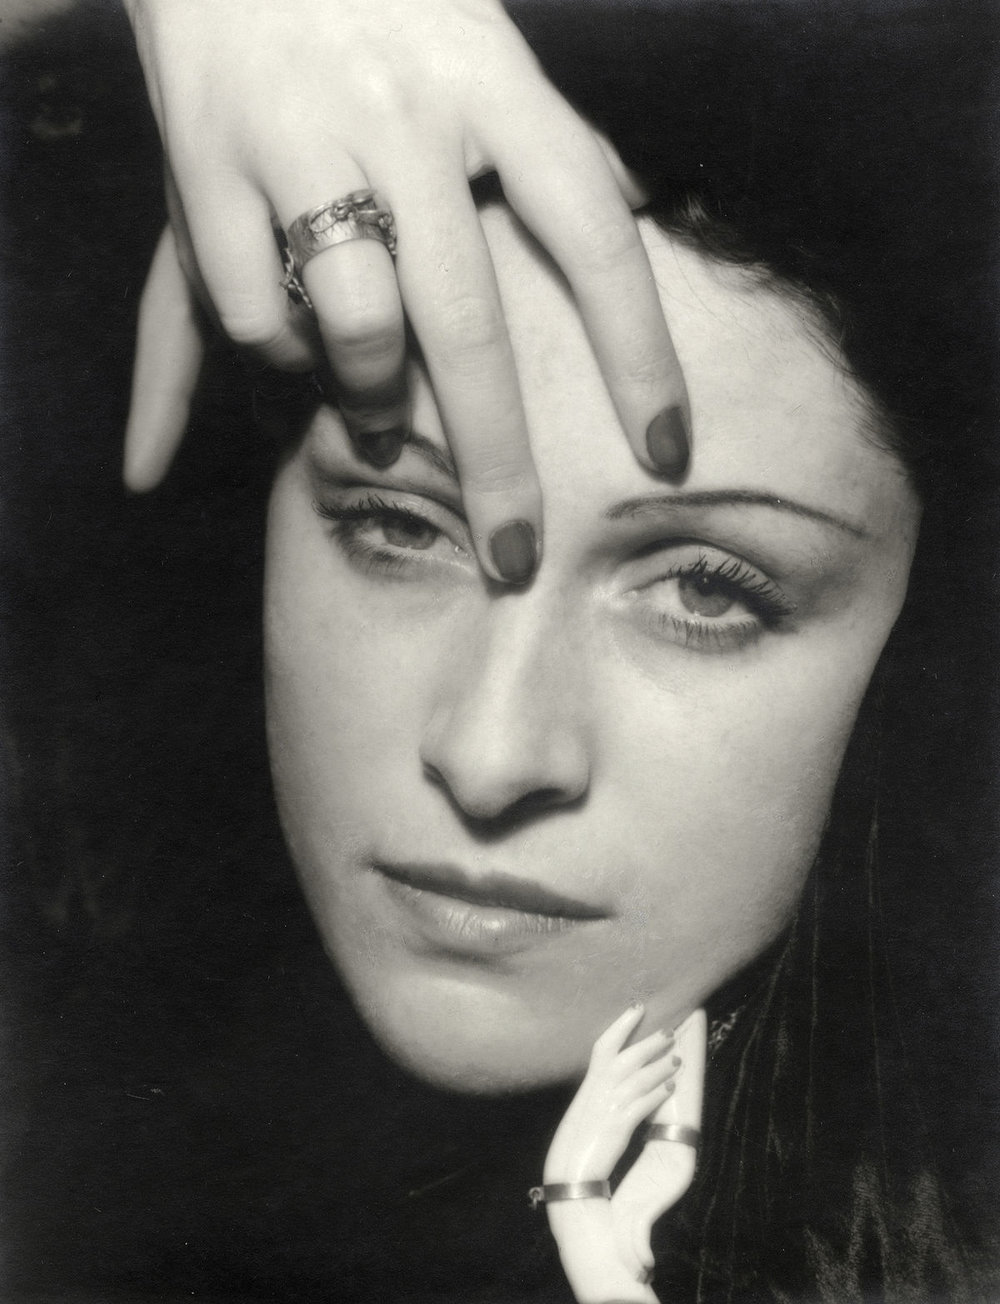 Dora Maar was a French artist who hung out with the Surrealists, like Man Ray, and engaged in a tumultuous relationship with Pablo Picasso.